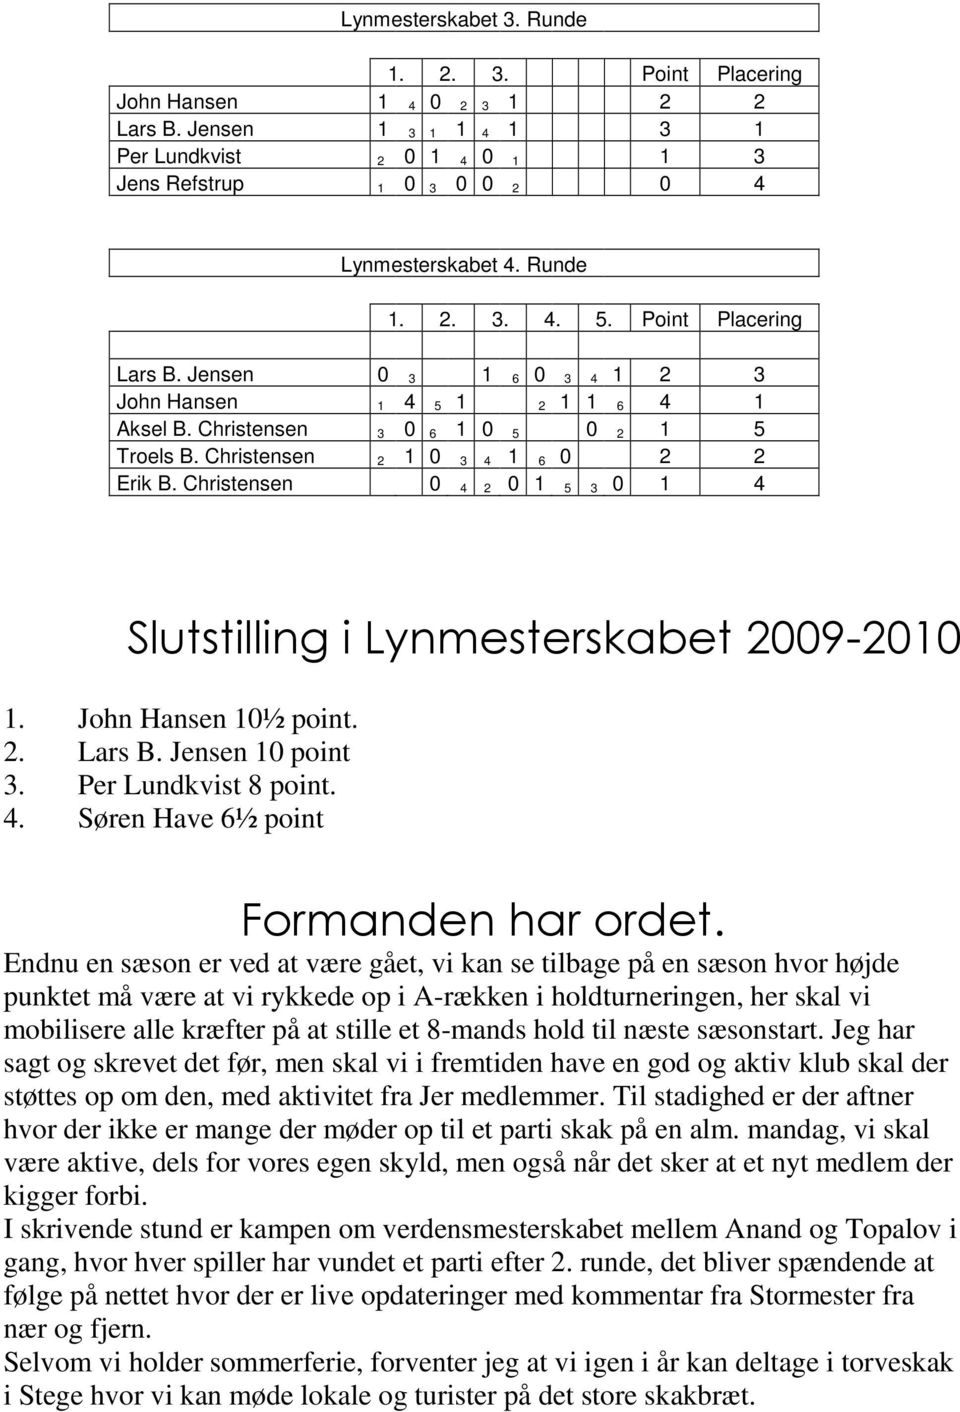 Christensen 0 4 2 0 1 5 3 0 1 4 Slutstilling i Lynmesterskabet 2009-2010 1. John Hansen 10½ point. 2. Lars B. Jensen 10 point 3. Per Lundkvist 8 point. 4. Søren Have 6½ point Formanden har ordet.